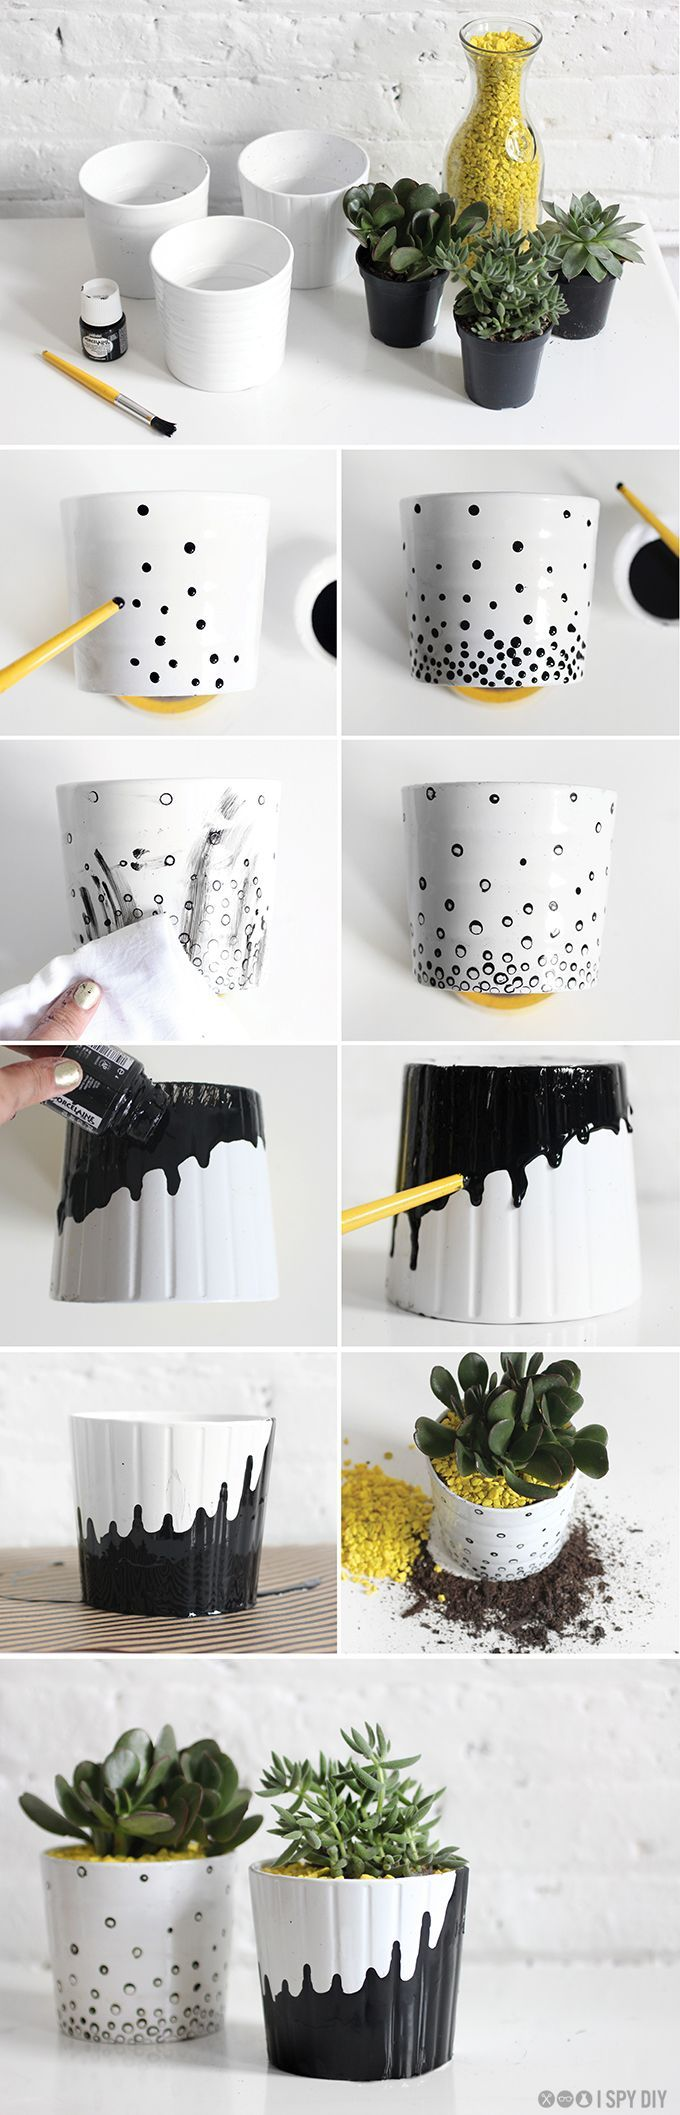 DIY Painted Plant Pots Tutorial: Polka Dotted And Pair Drip